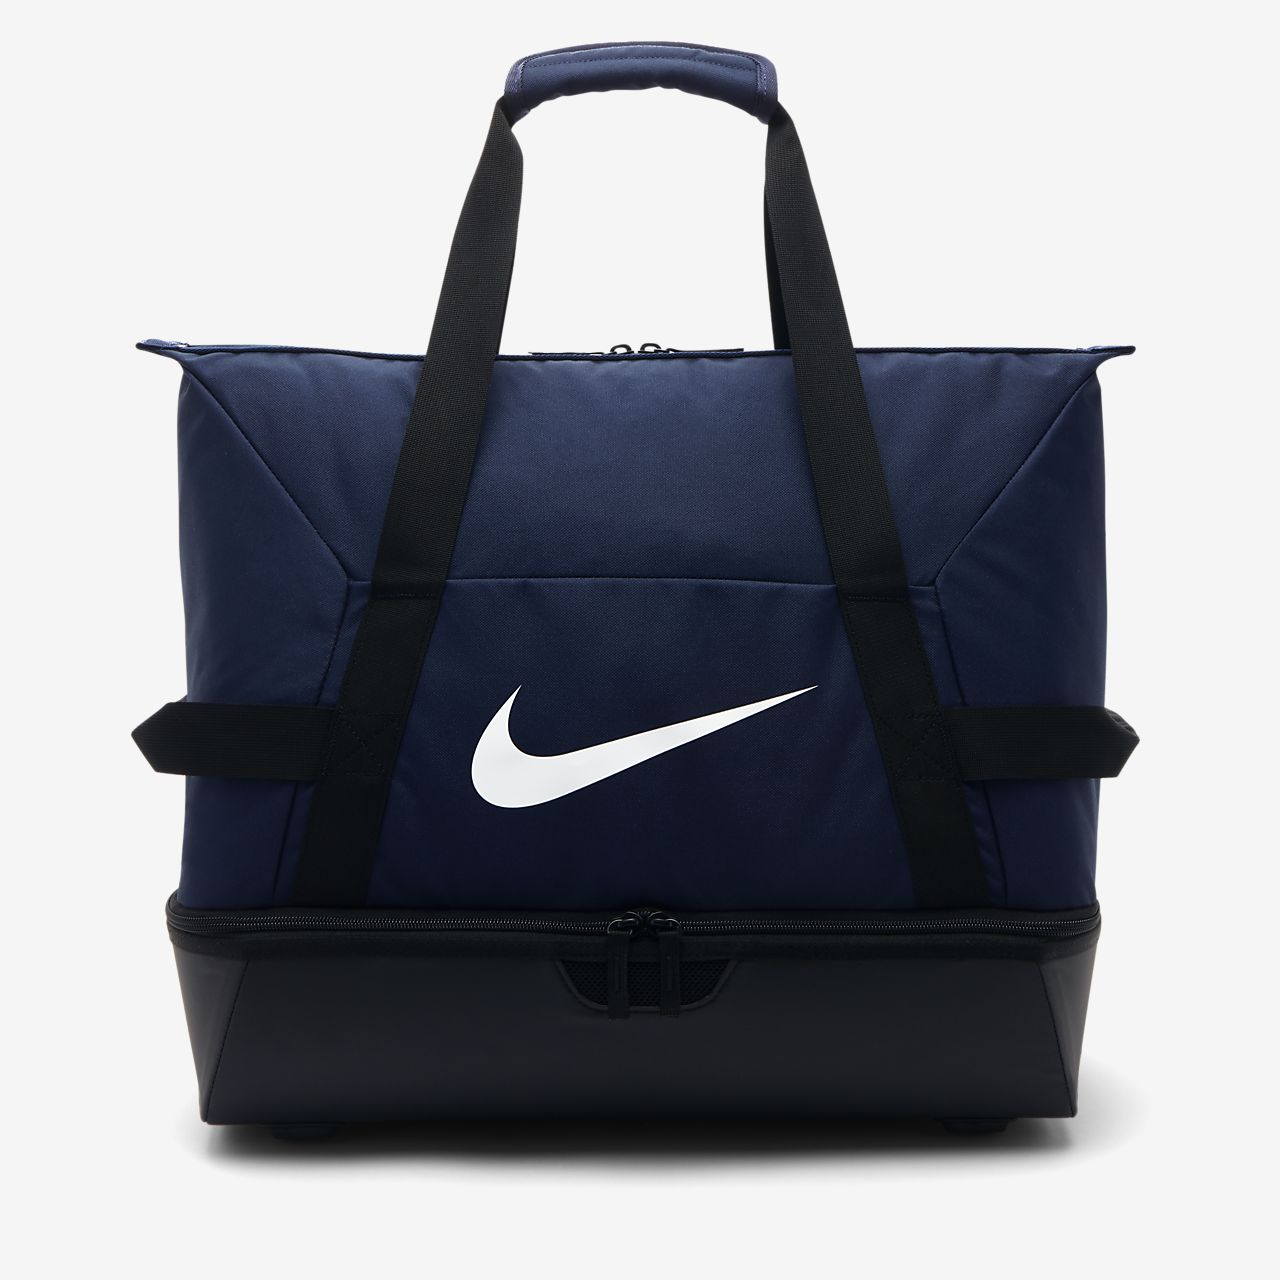 Nike Academy Team Hardcase (Medium) Football Duffel Bag